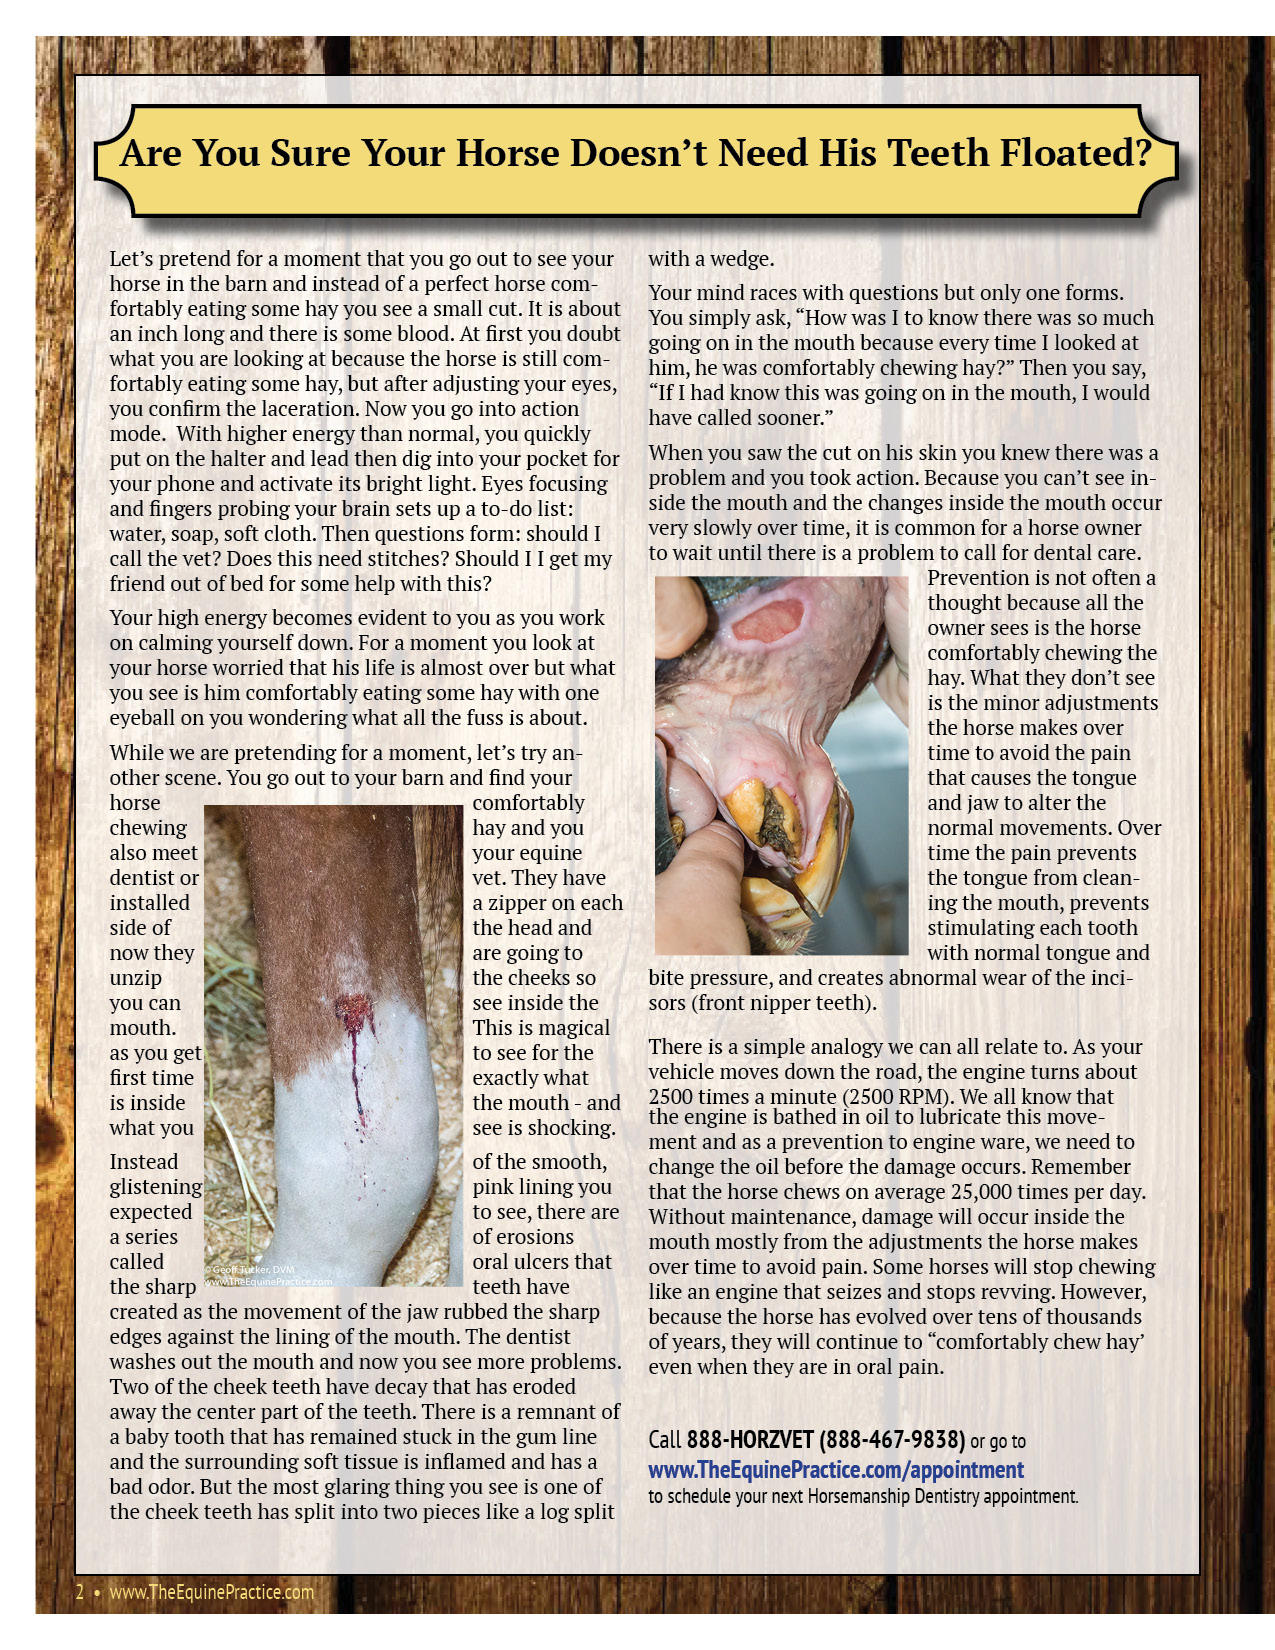 The Equine Practice Rounds™ Vol 1 Issue 3 page 2 of 4